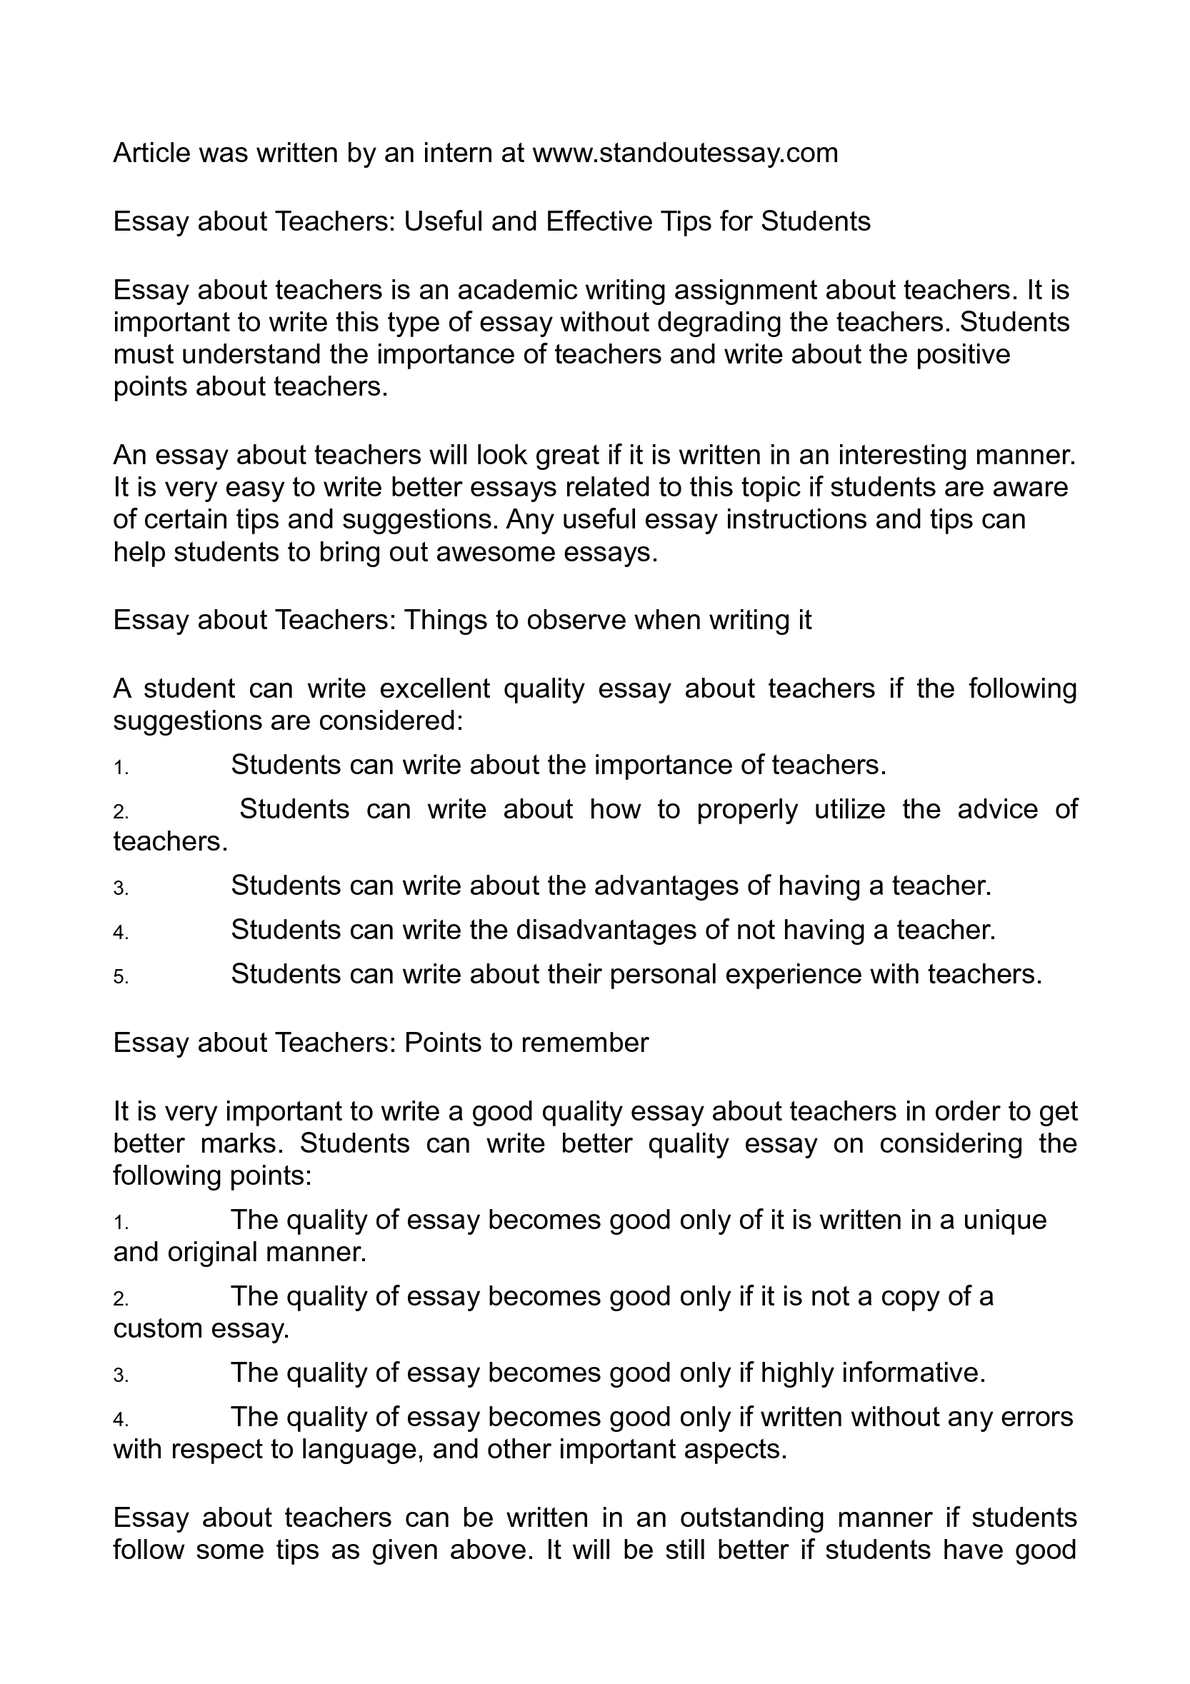 calamo   essay about teachers useful and effective tips for students